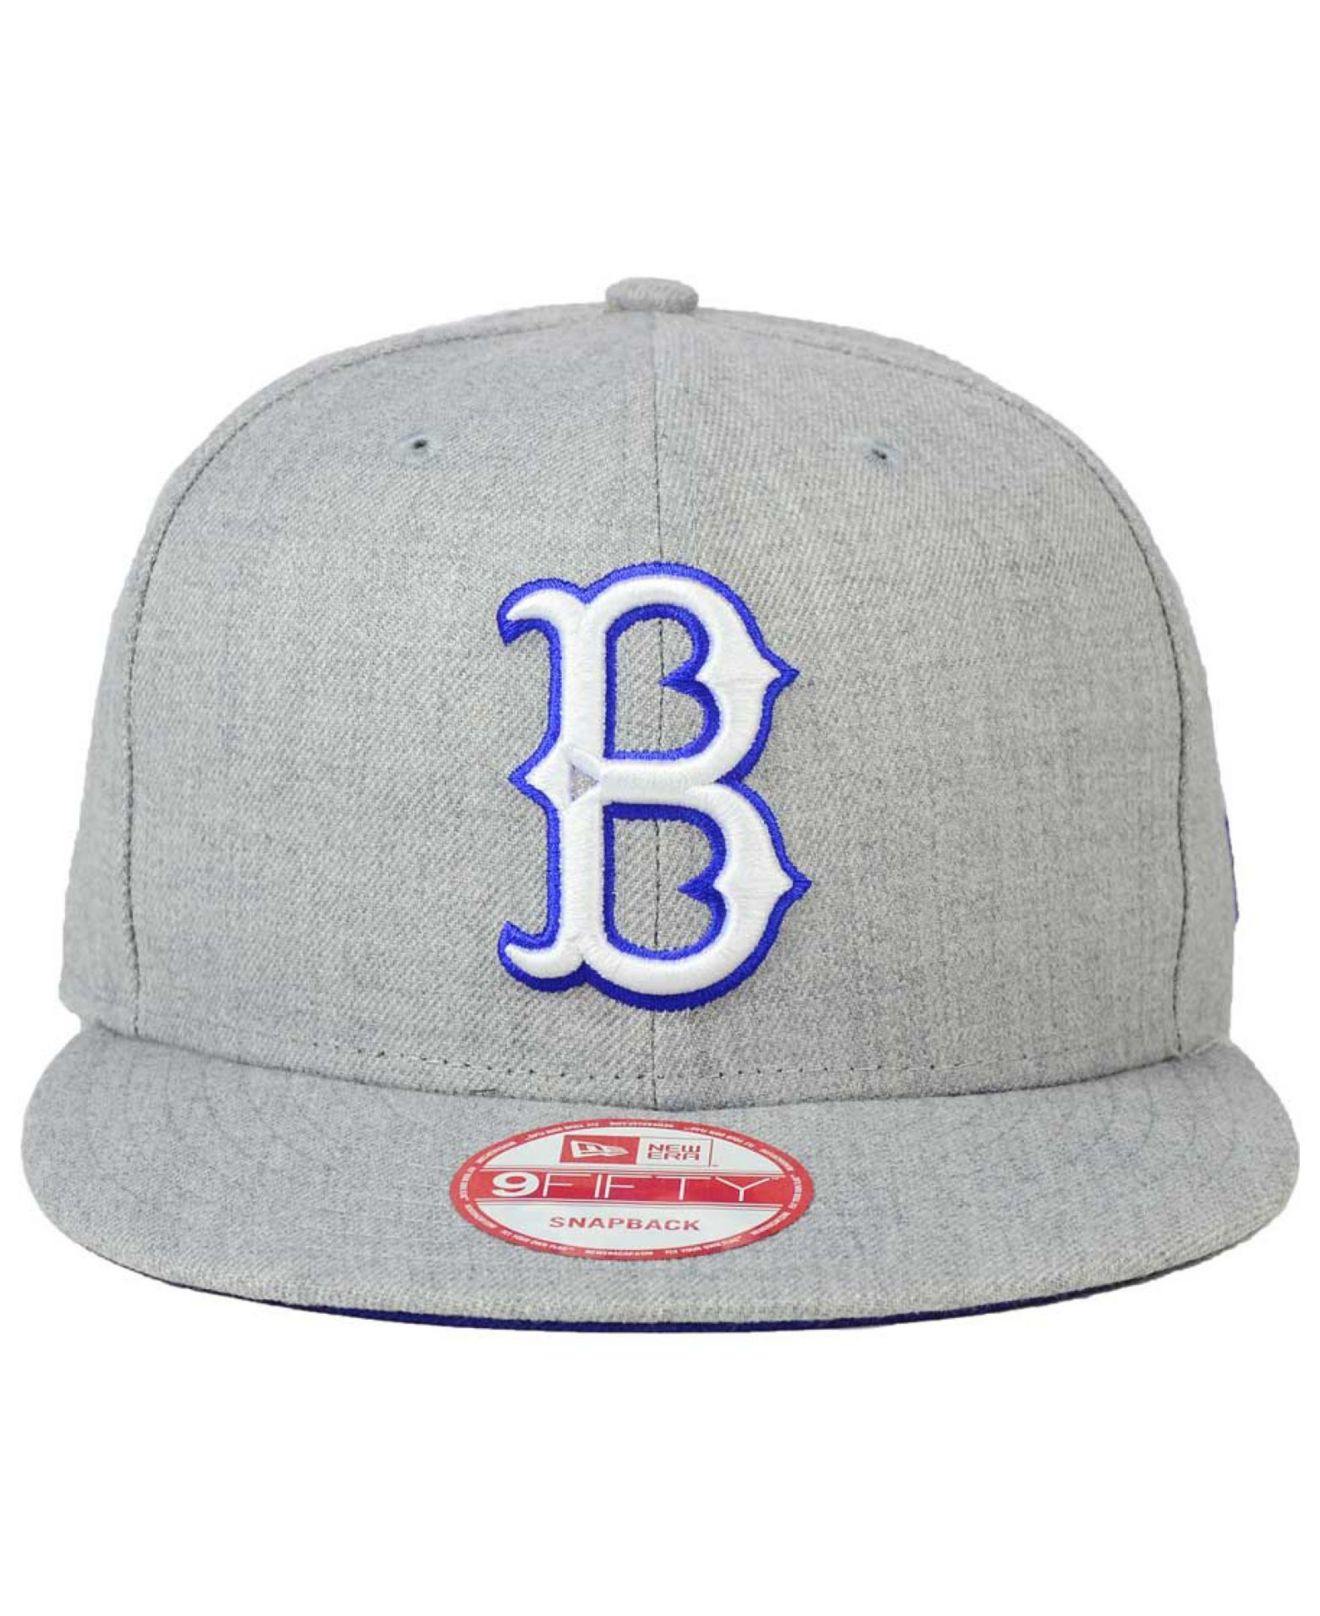 c62cc4a061e48 KTZ Brooklyn Dodgers Heather Team Color 9fifty Cap in Gray for Men ...